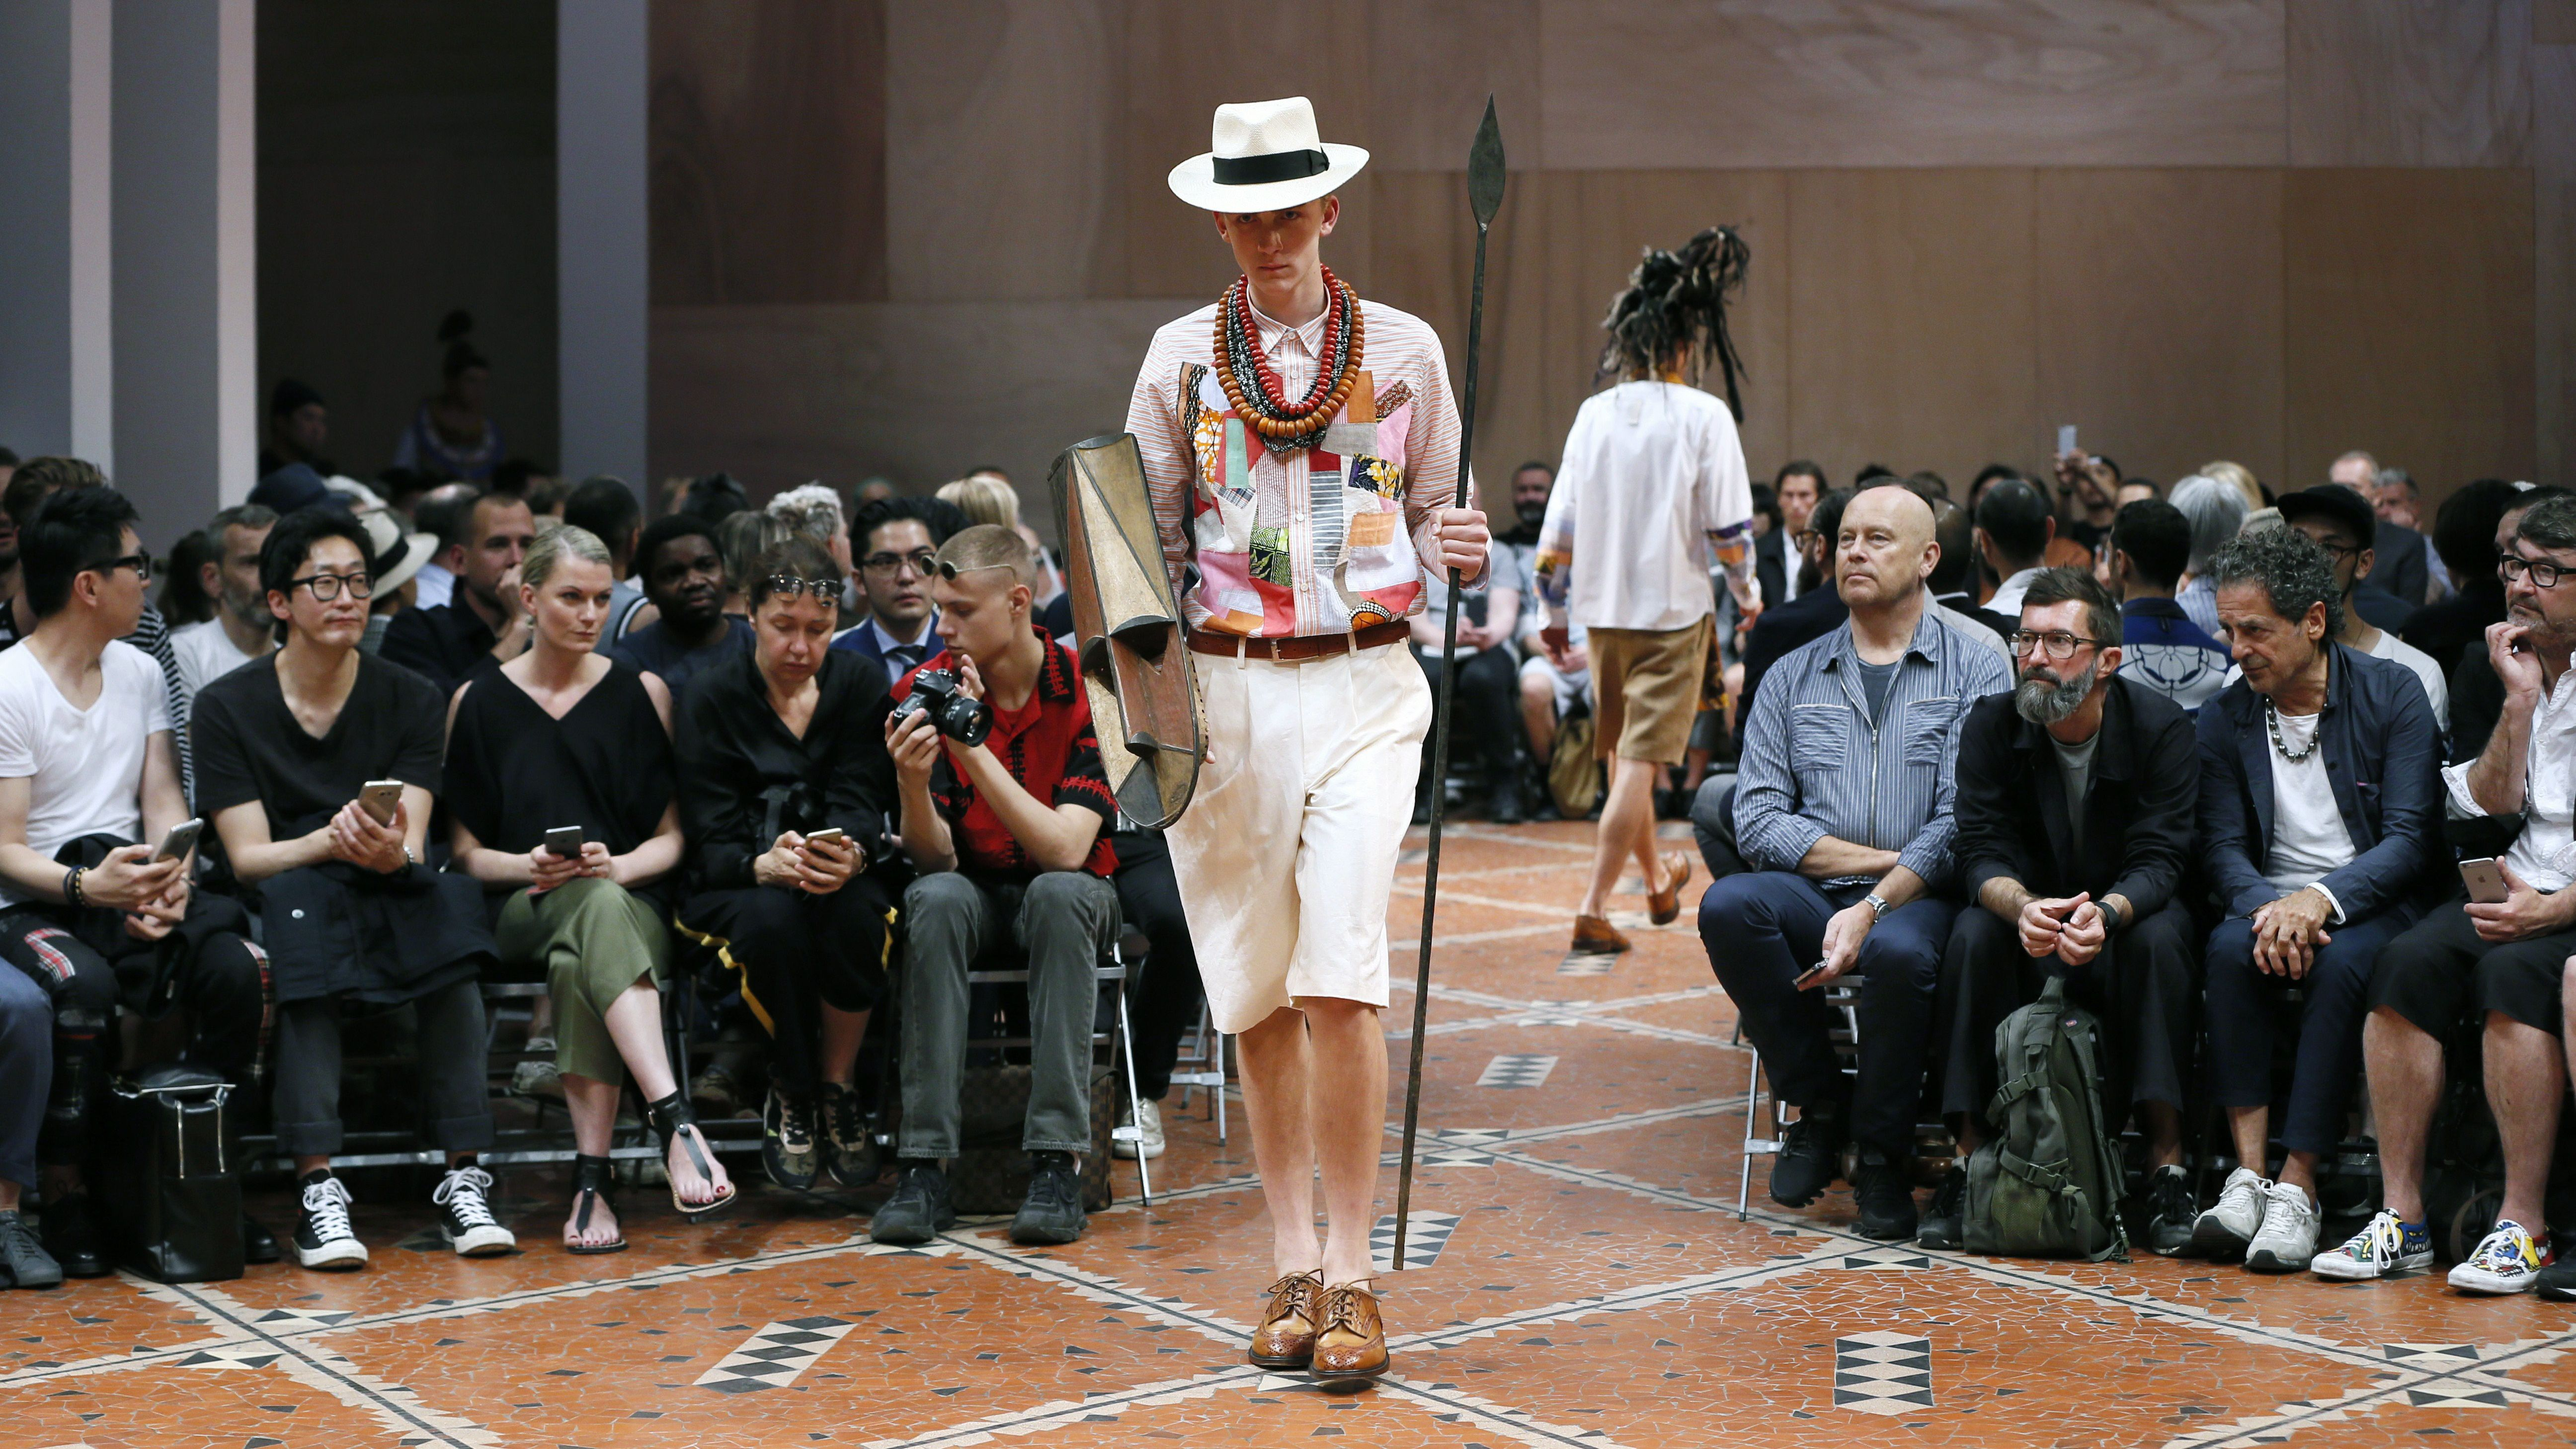 A model presents a creation by Japanese designer Junya Watanabe during the men's Spring Summer collection fashion shows in Paris on June 26, 2015.